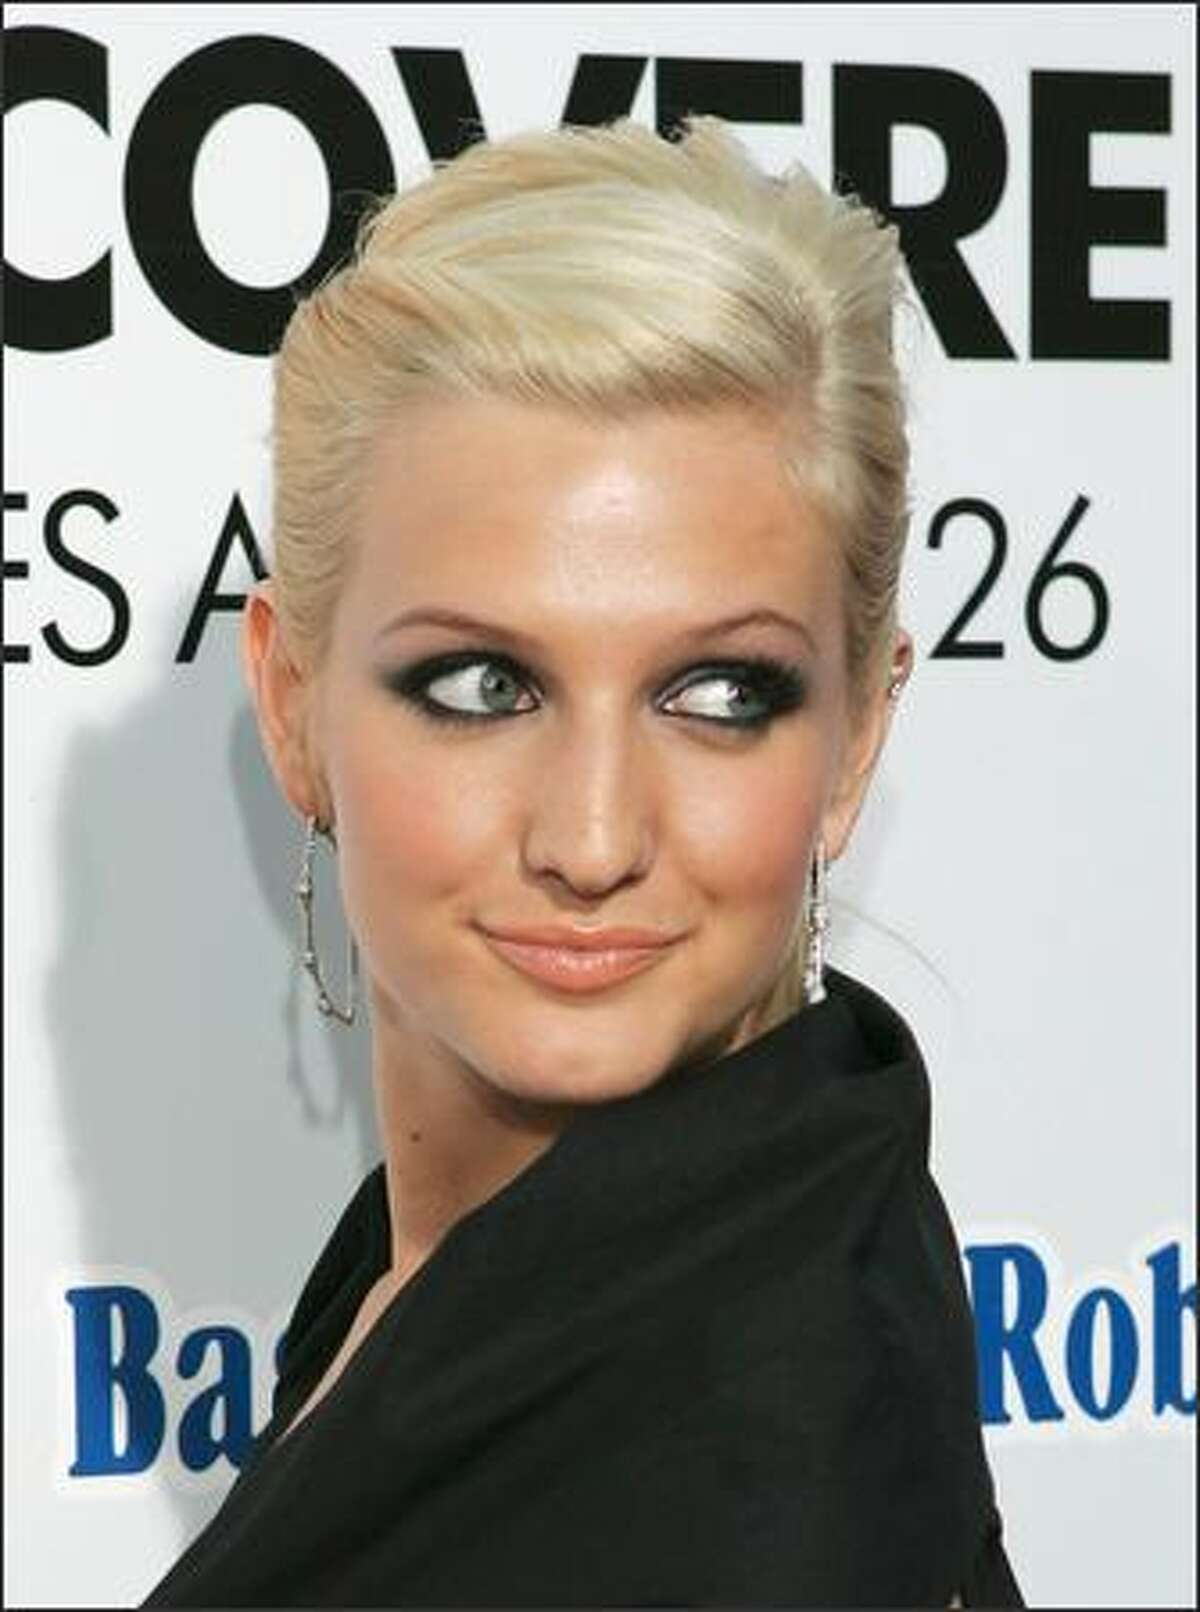 She's gone platinum blond like big sis Jessica, but will that jump-start Ashlee Simpson's flagging career? Papa/manager Joe Simpson has rebooked Ashlee on